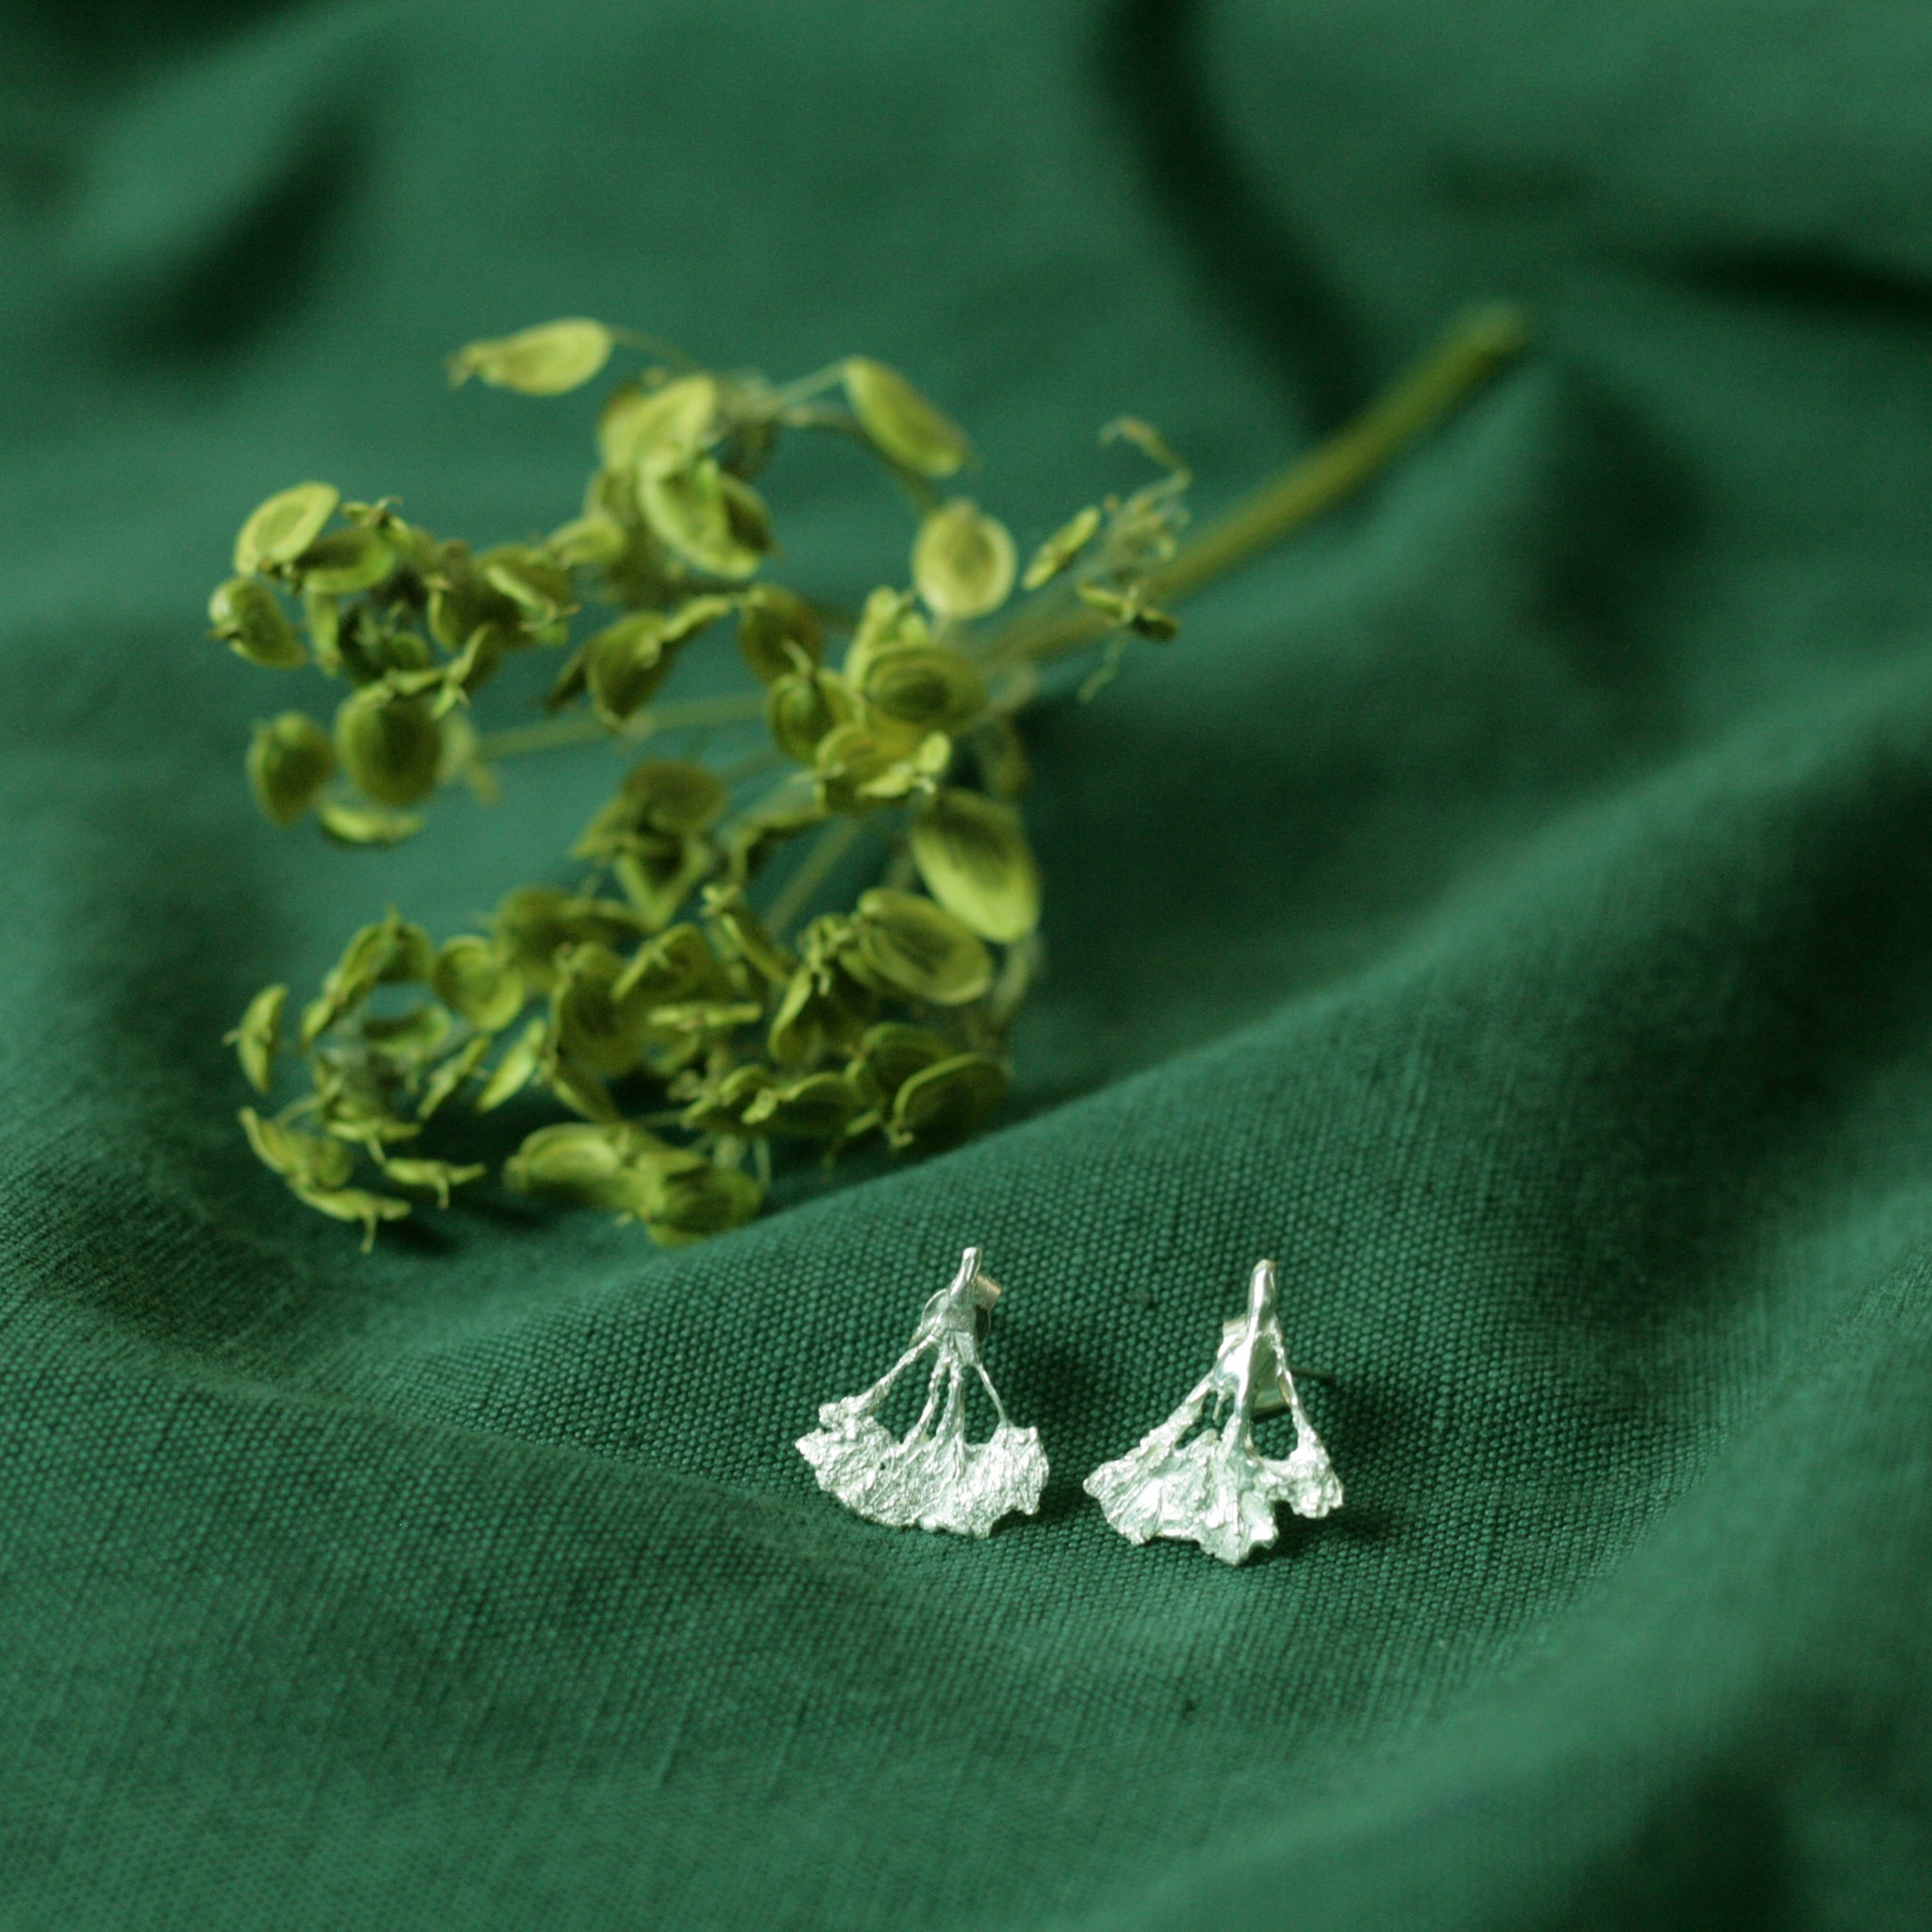 cow parsley silver earrings on green cloth with dried flowers